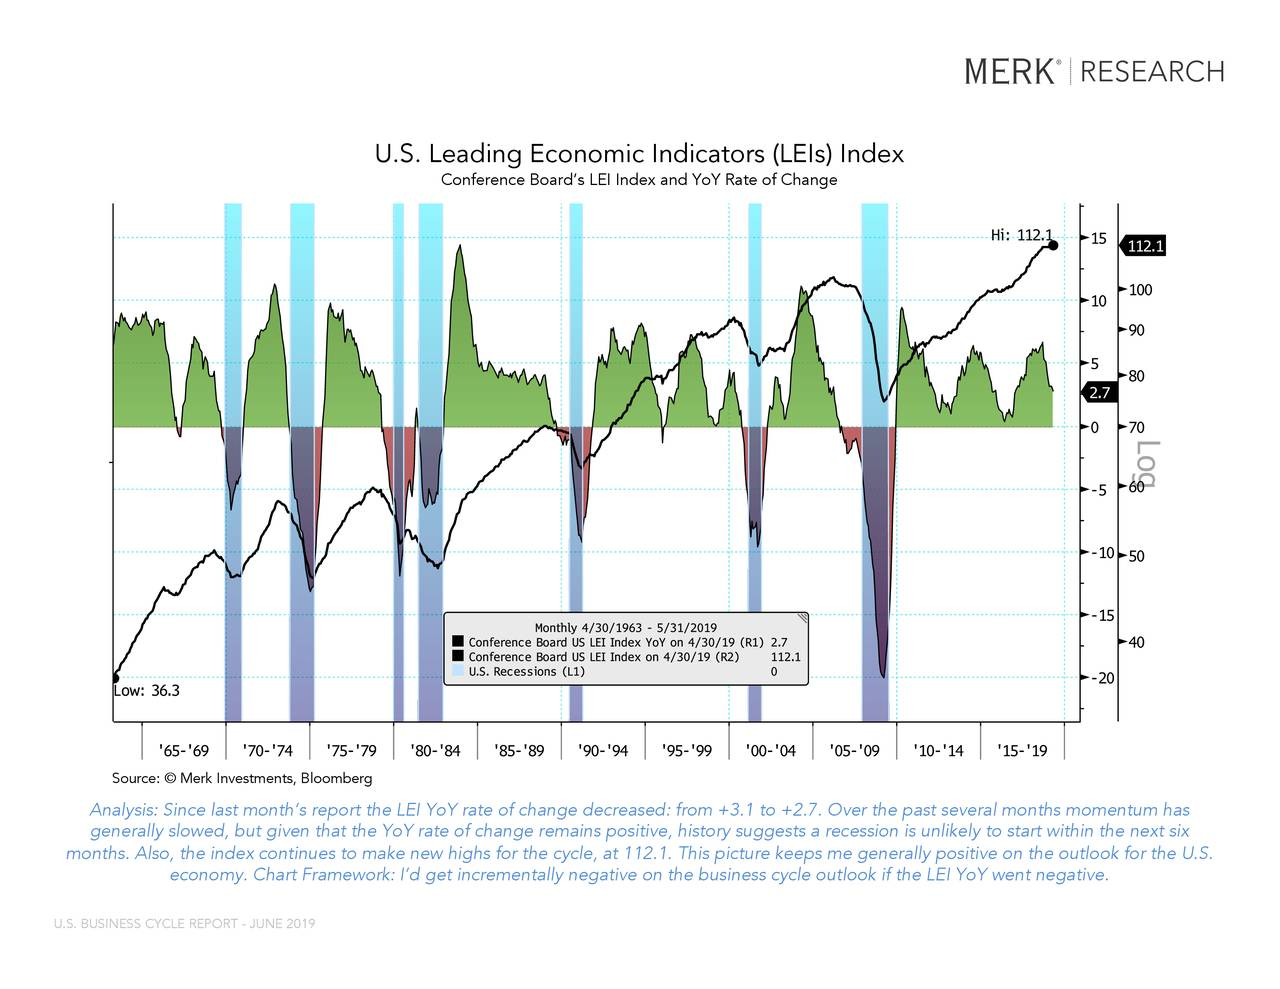 "LEI YOY Index (Conference Board US Leadi... LEI TOTL Index (Conference Board US Lead... USRINDEX Index (U.S. Recession Indicator... U.S. Leading Economic Indicators (LEIs) Index Conference Board's LEI Index and YoY Rate of Change Source: ©Merk Investments, Bloomberg This report may not be modified or altered in any way. The BLOOMBERG PROFESSIONAL service and BLOOMBERG Data are owned and distributed locally by Bloomberg Finance LP (""BFLP"") and its subsidiaries in all jurisdictions other than Argentina, Bermuda, China, India, Japan and Korea (the (""BFLP do not provide investment advice, and nothing herein shall constitute an offer of financial instruments by BFLP, BLP or their affiliates.upport and service for the Services and distributes the Services either directly or through a non-BFLP subsidiary in the BLP Countries. BFLP, BLP and their affiliates Analysis: Since last month's report the LEI YoY rate of change decreased: from +3.1 to +2.7. Over the past several months momentum has generally slowed, but given that the YoY rate of change remains positive, history suggests a recession is unlikely to start w ithin the next six Bloomberg ® 06/10/2019 07:51:07 27 months. Also, the index continues to make new highs for the cycle, at 112.1. This picture keeps me generally positive on the outlook for the U.S. economy. Chart Framework: I'd get incrementally negative on the business cycle outlook if the LEI YoY went negative. U.S. BUSINESS CYCLE REPORT - JUNE 2019"